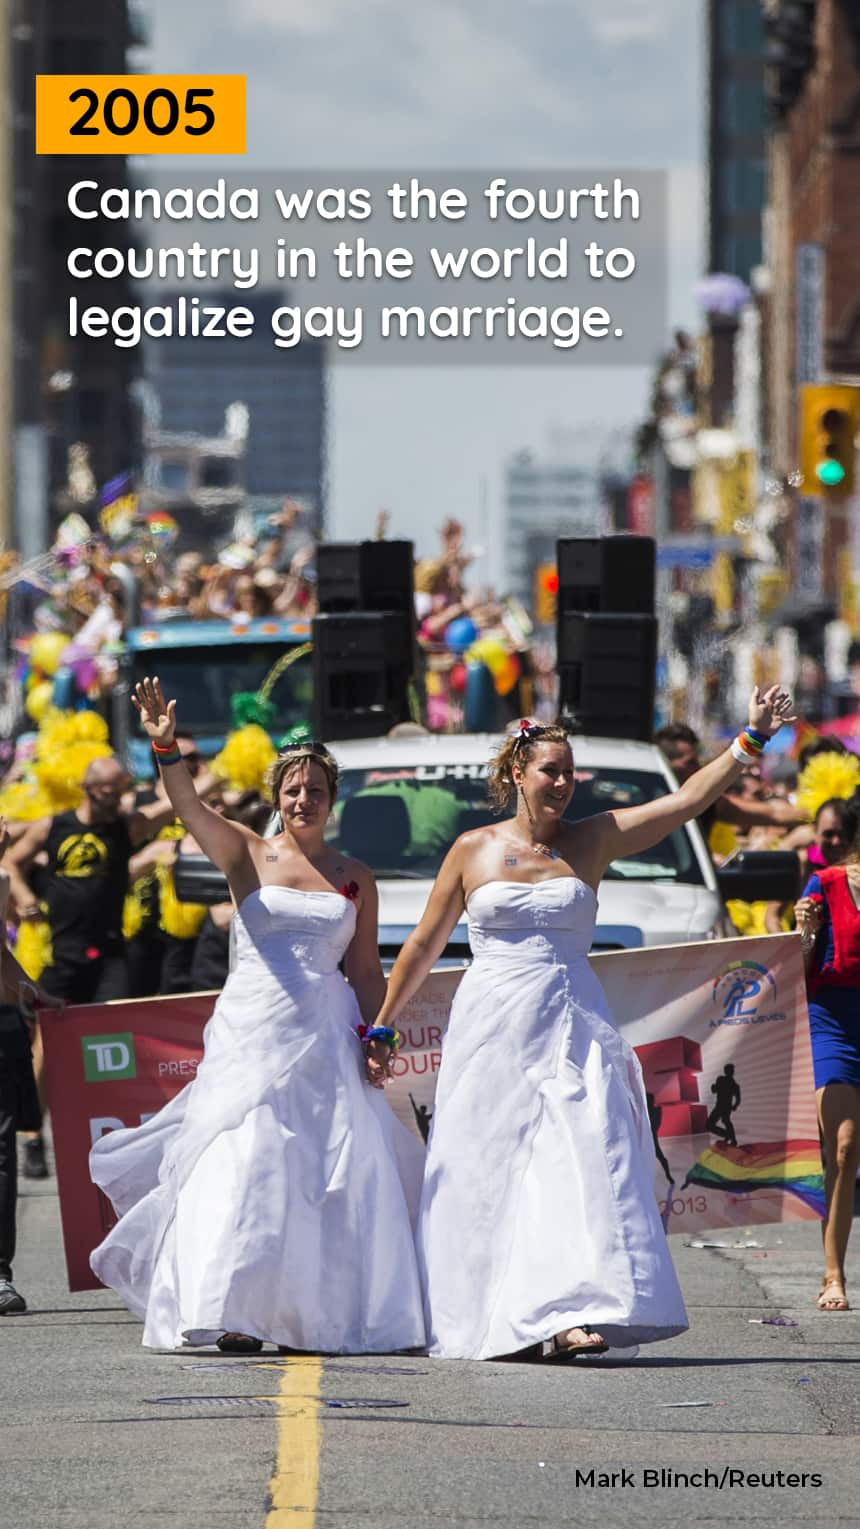 Two women in wedding dresses walk in a parade